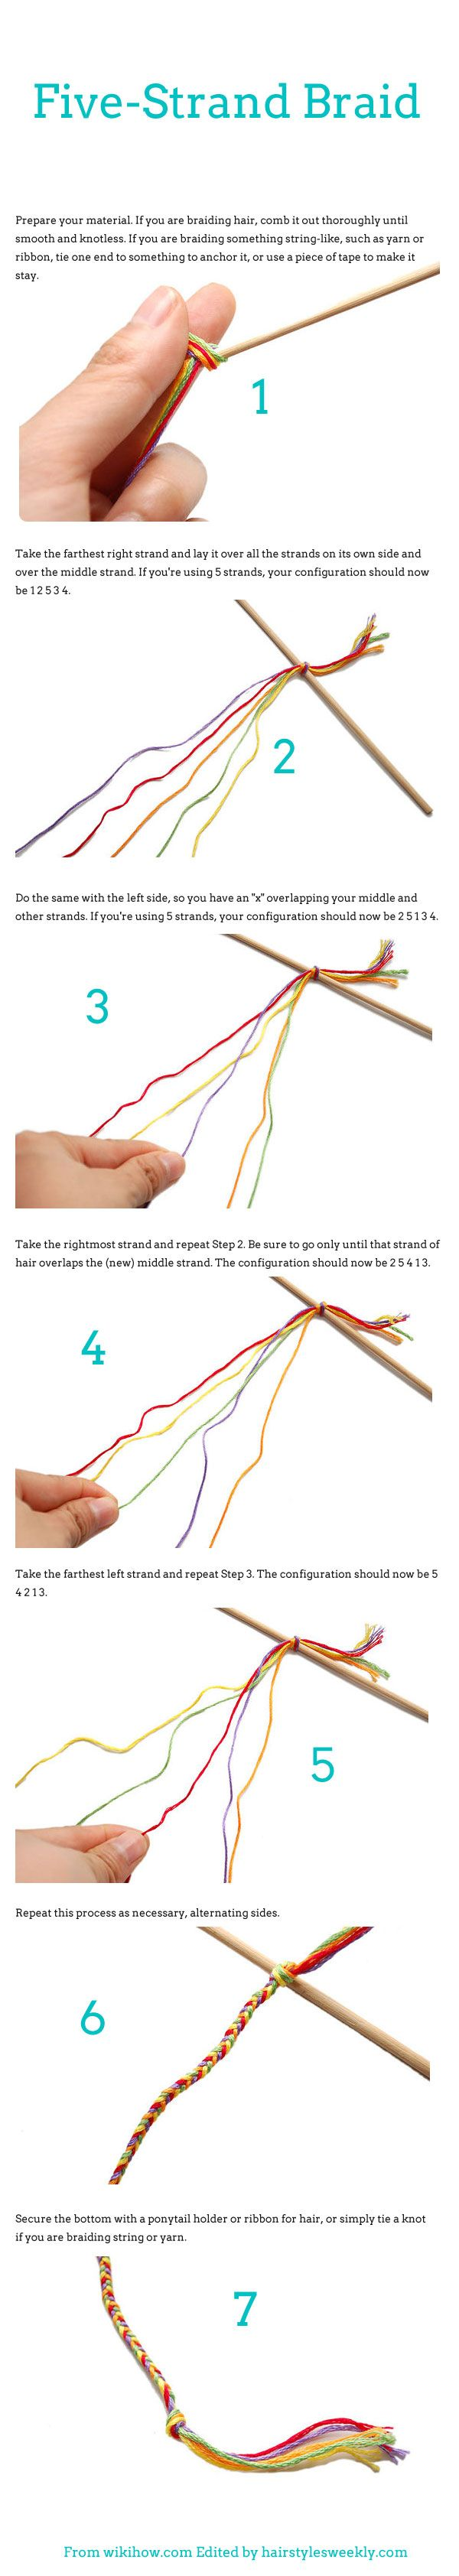 DIY: How To Braid Five Strand Braid Hairstyles - 5 Strand Braid bracelet